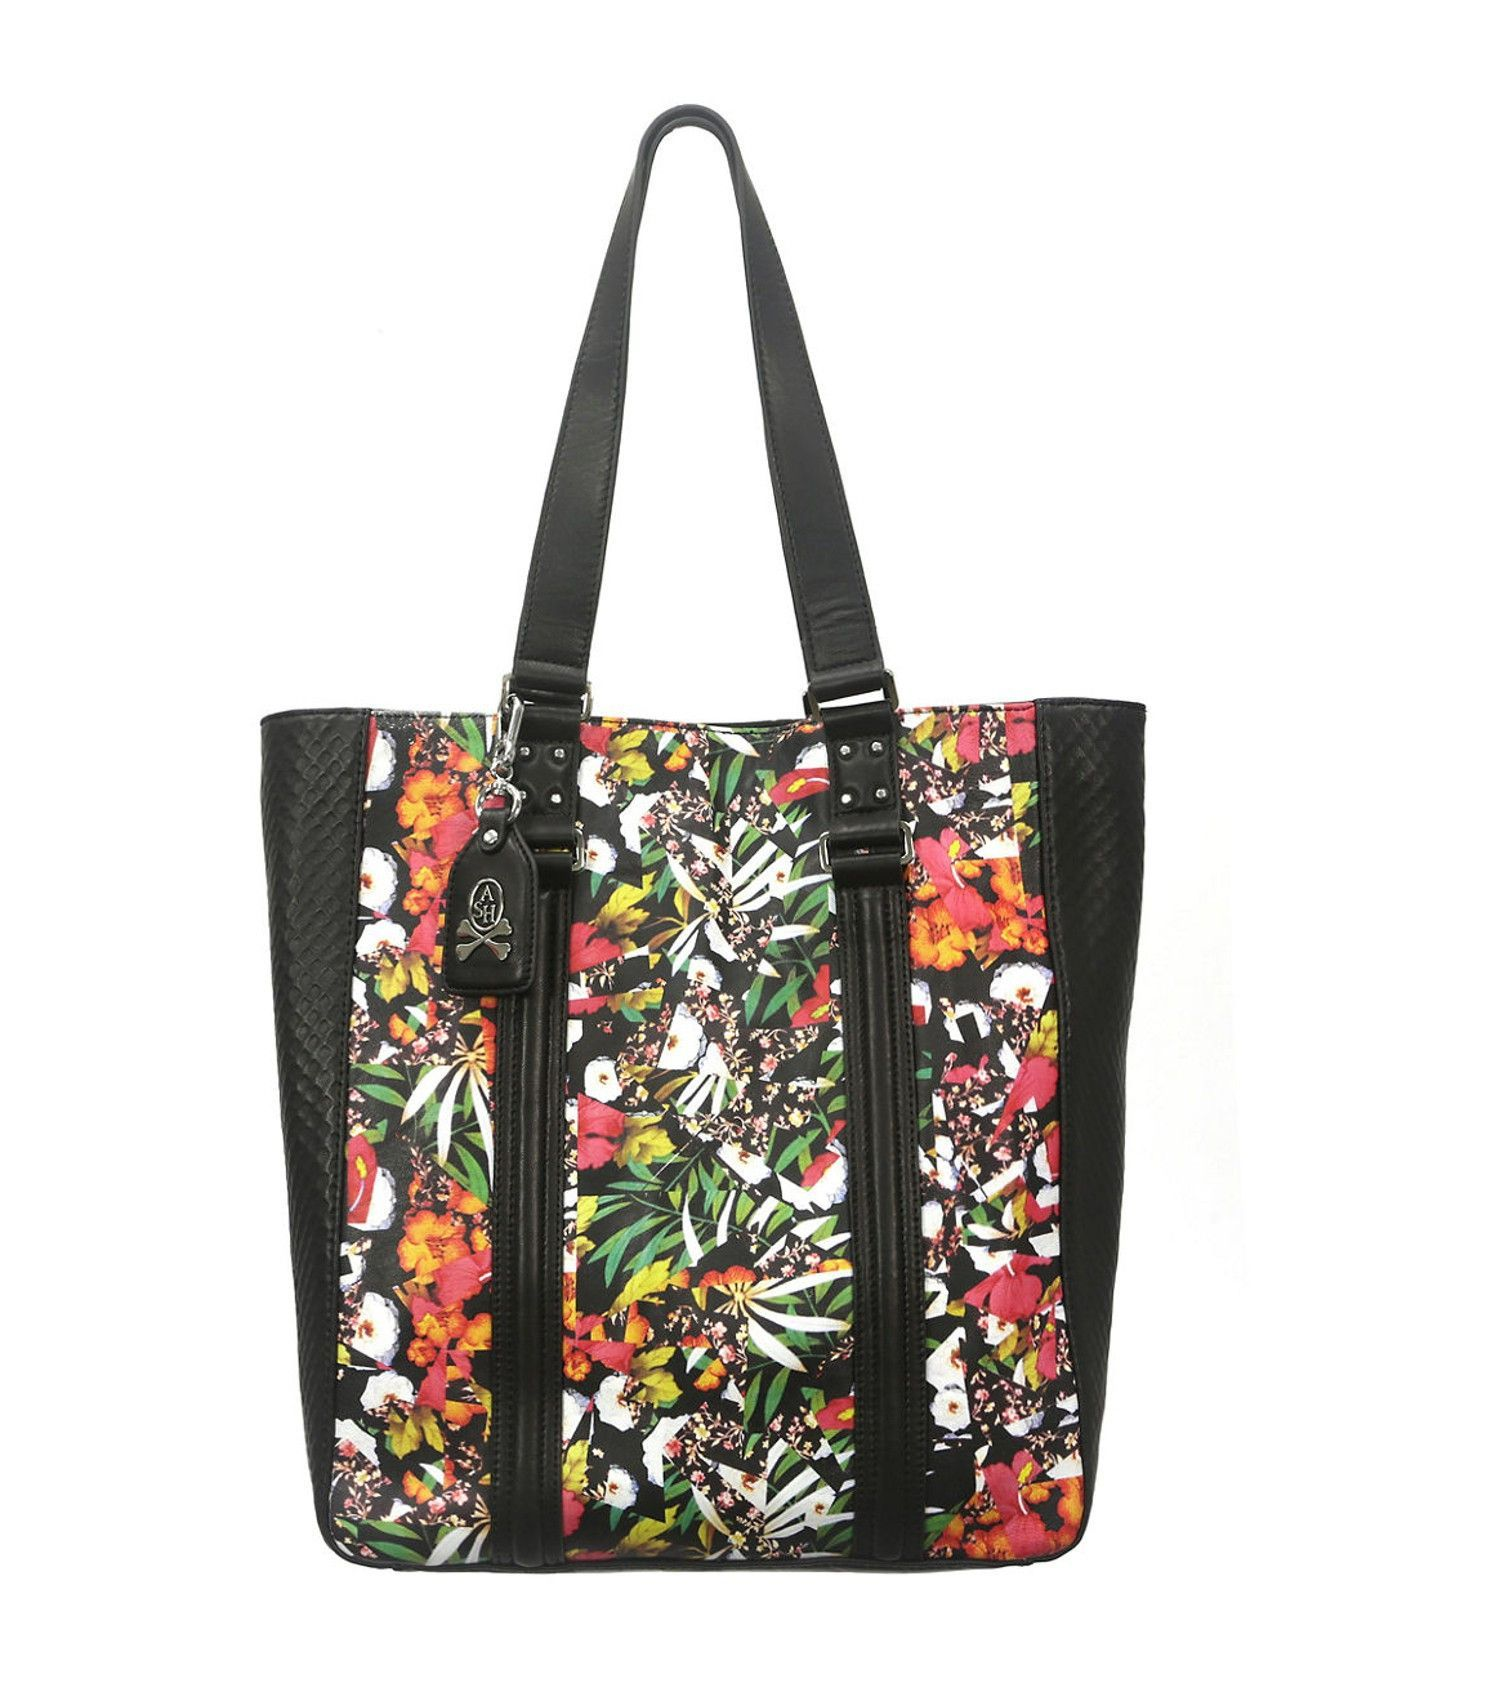 ASH Indy Bahia Floral-Print Leather Tote